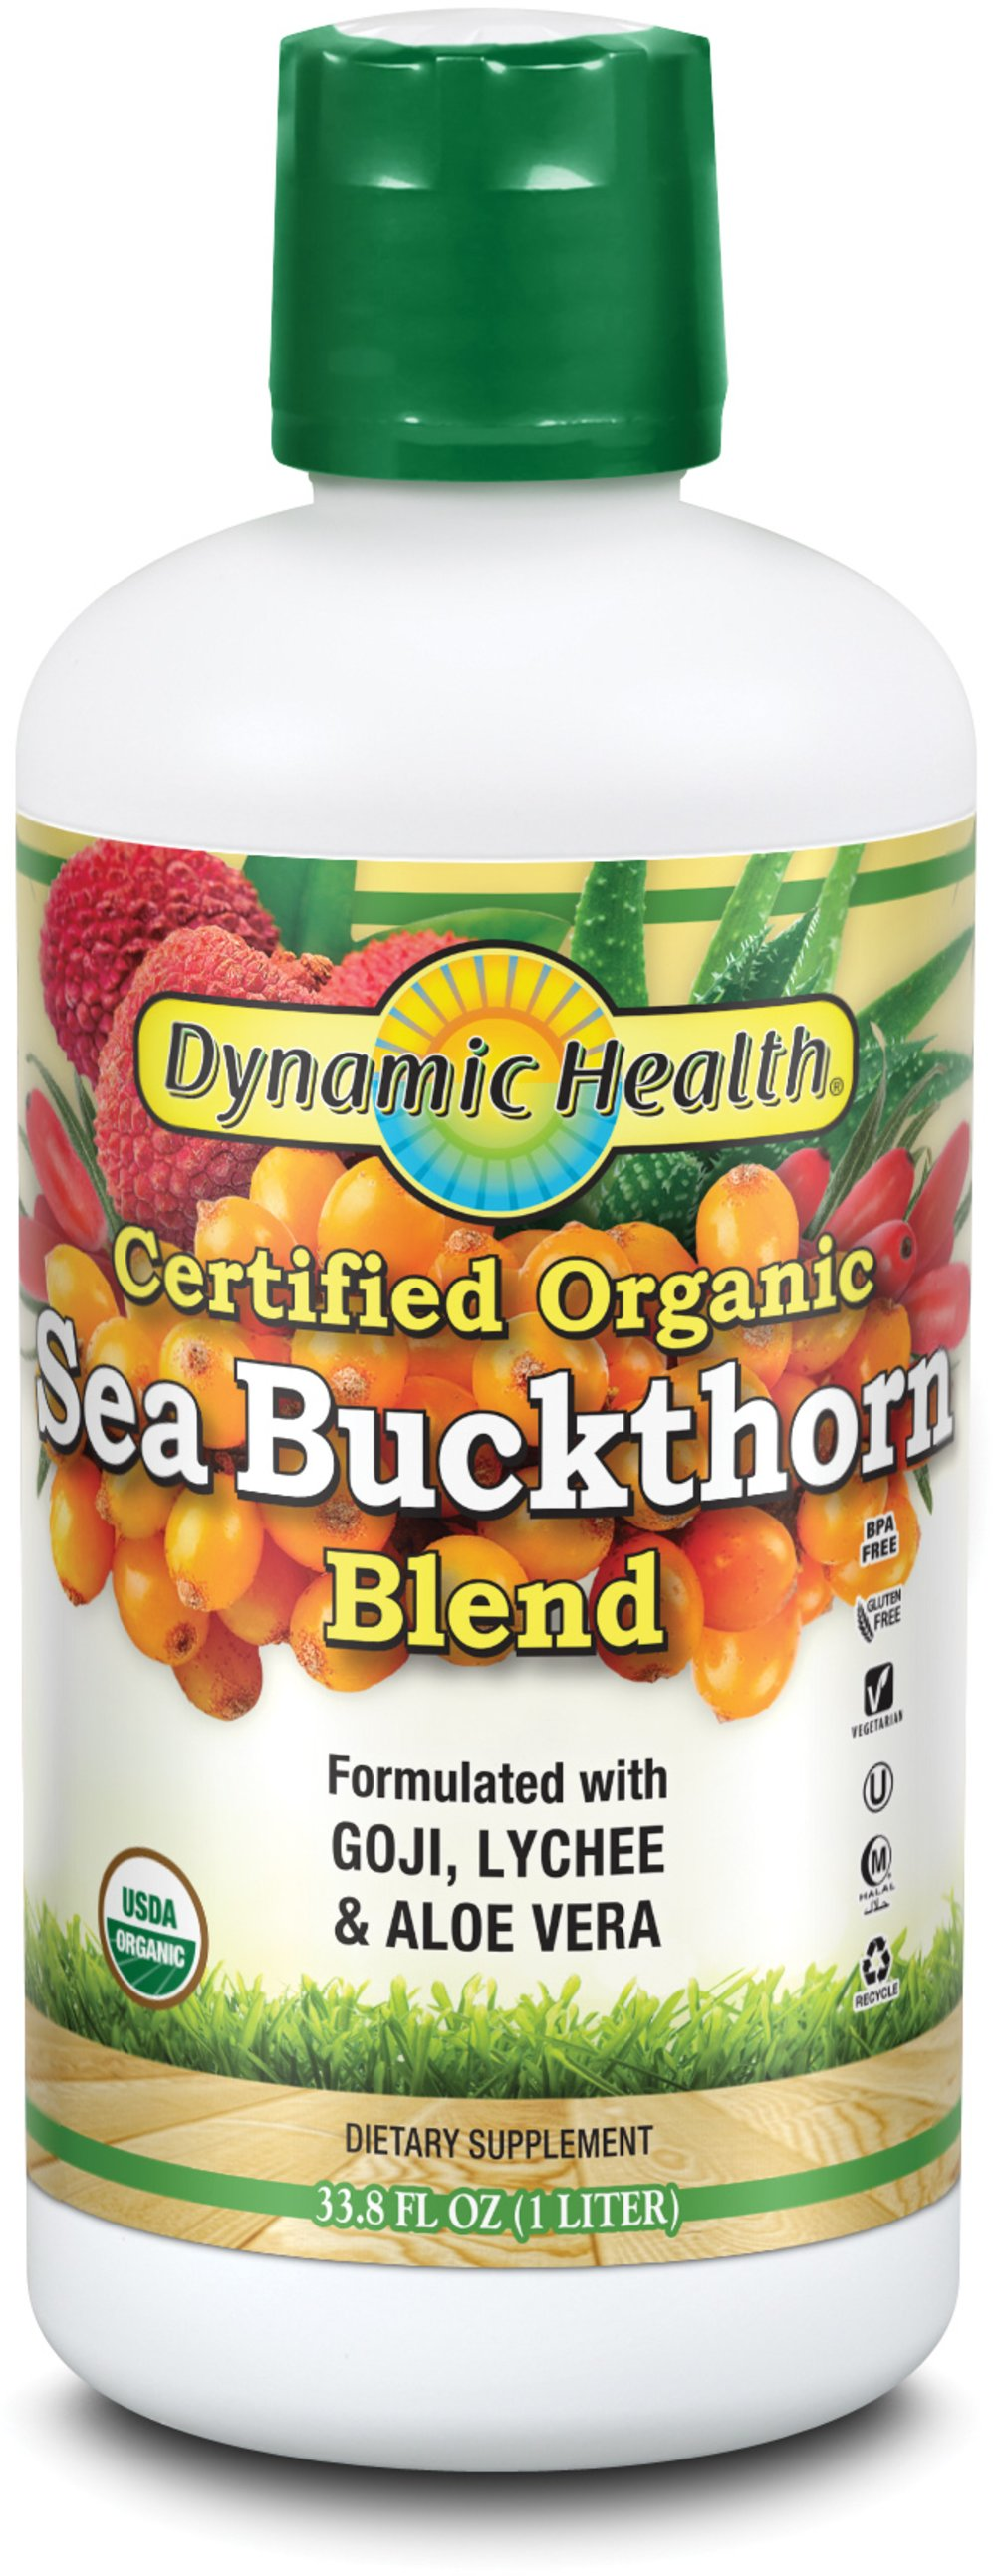 Organic Sea Buckthorn Juice Organic Certified Seabuckthorn fortified with Goji, Lychee+ Aloe Vera. The Seabuckthorn Berry flourishes in the mountainous and colder regions of China. <p></p><p>The Seabuckthorn berry is used traditionally to help promote healthy living. **</p><p>Manufactured by Dynamic Health Laboratories, Inc.</p> 32 oz Liquid  $16.99